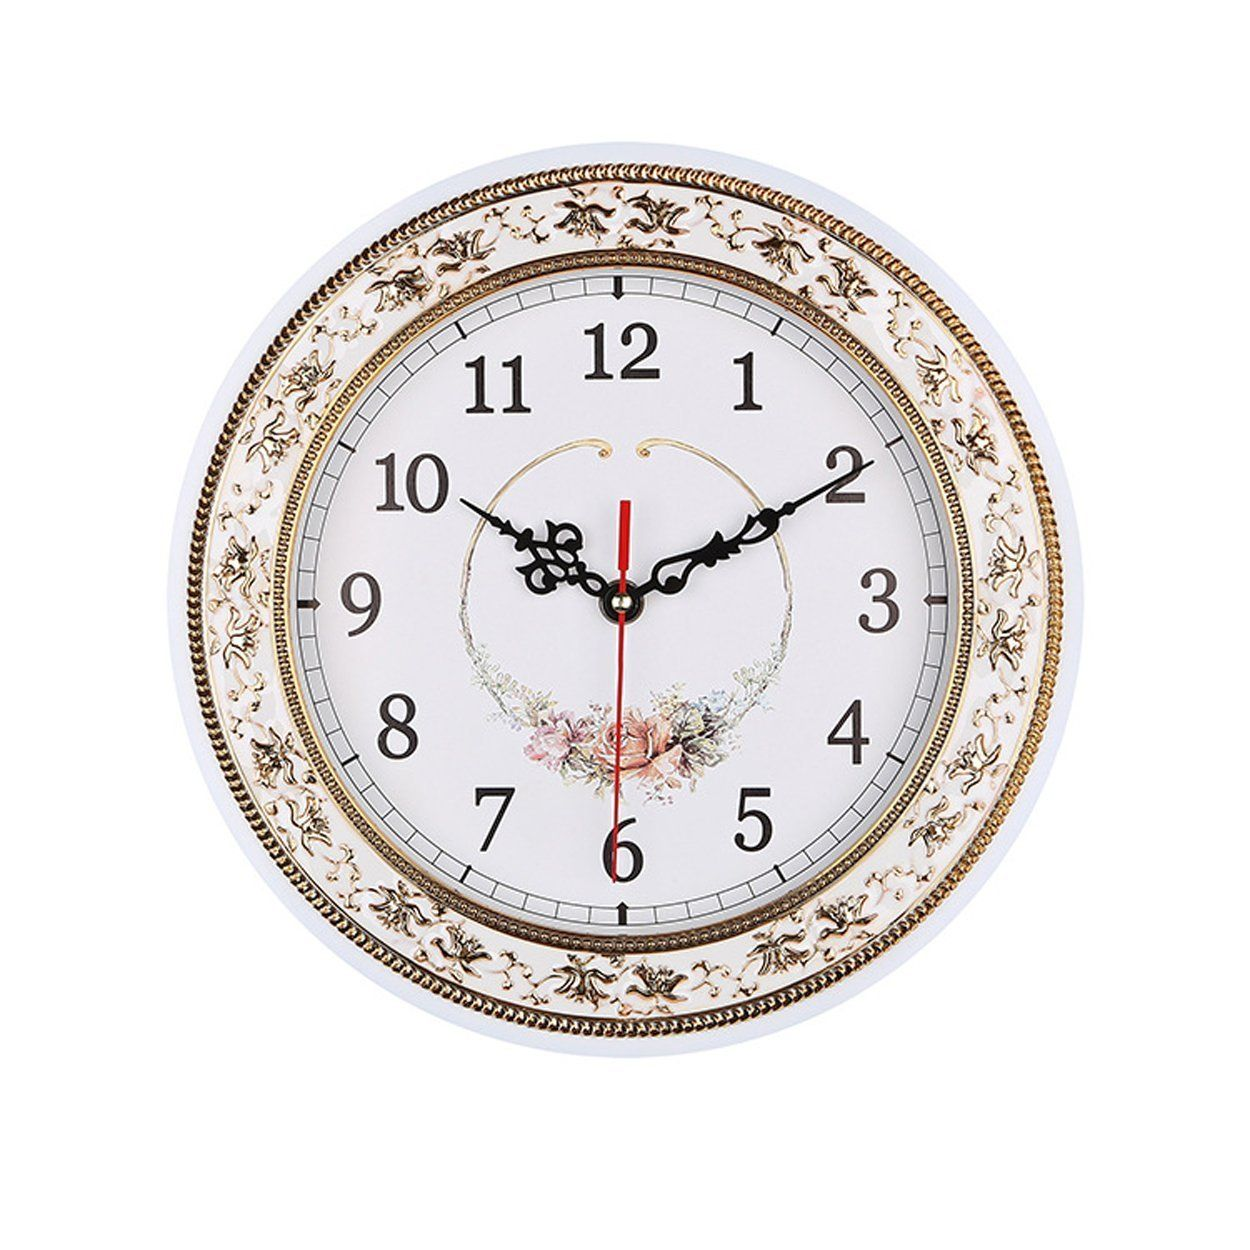 Foxtop 11 Inch Resin Floral Wall Clocks For Living Room Kitchen Home Decoration Vintage Style Clocks Want A Wall Clock Floral Wall Clocks Clock Wall Decor